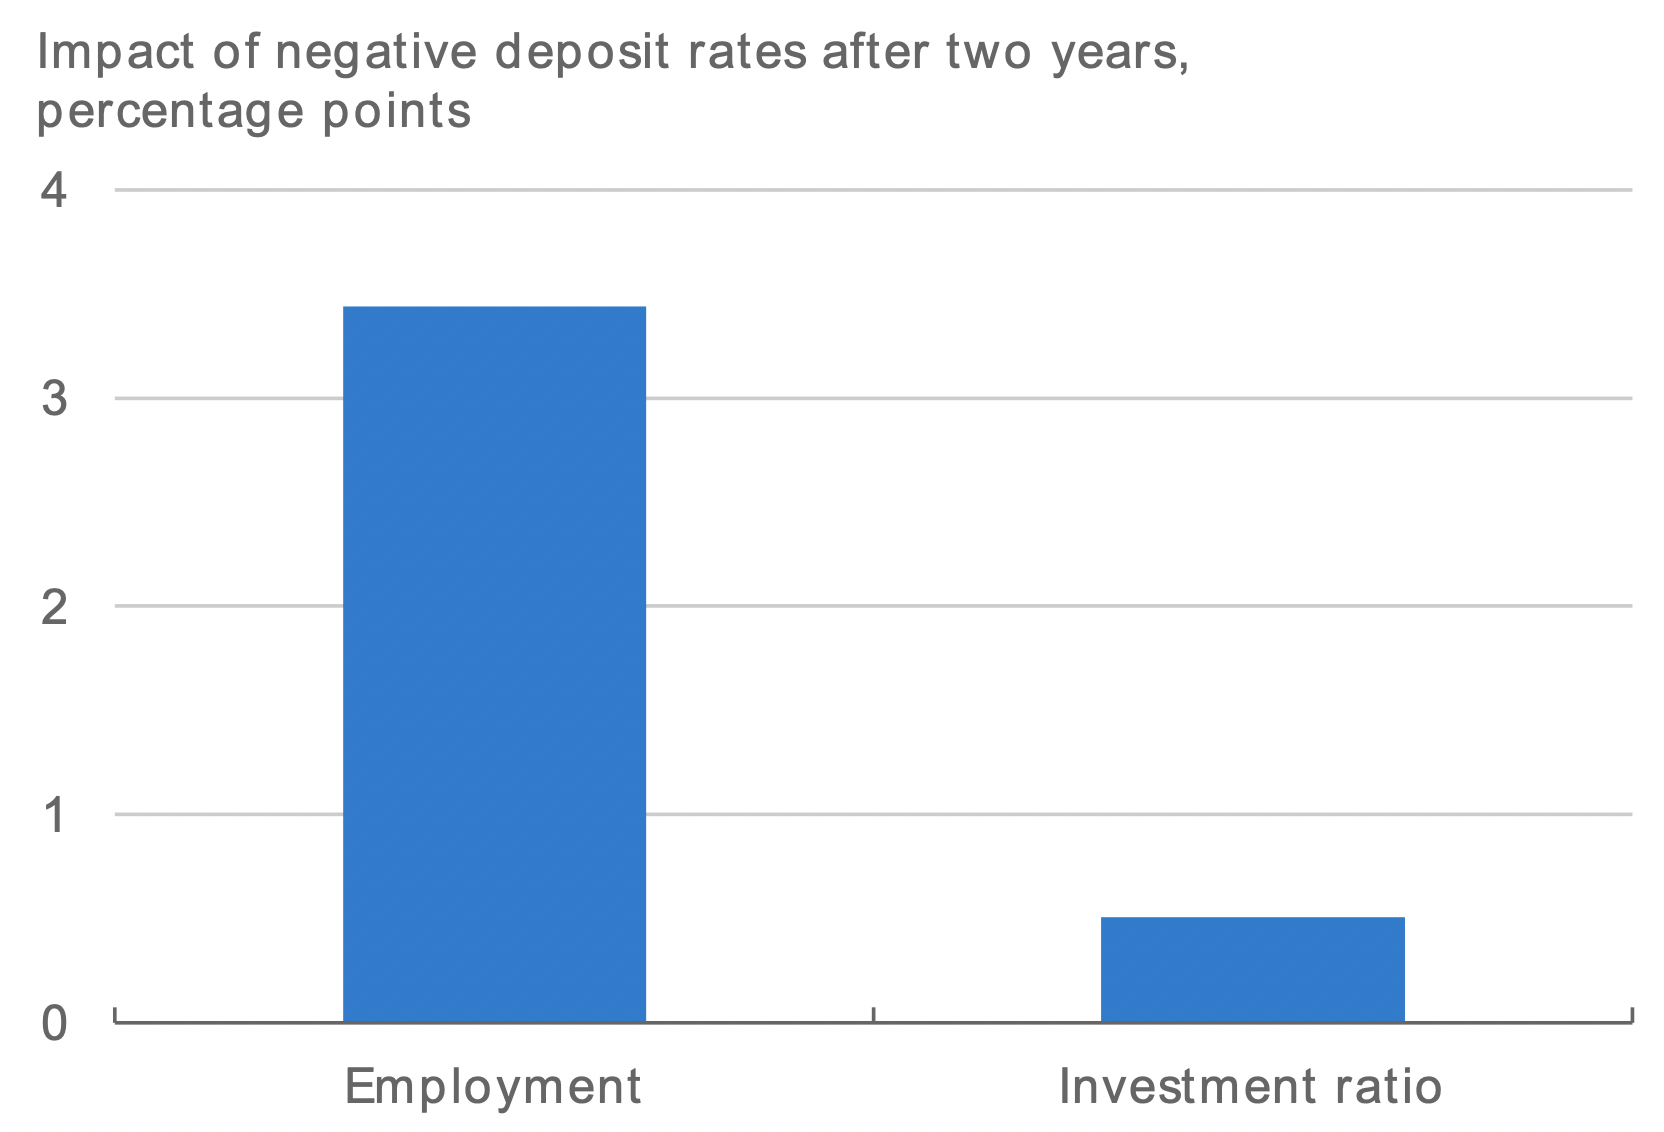 Firms facing negative deposit rates invest more and create more jobs 3